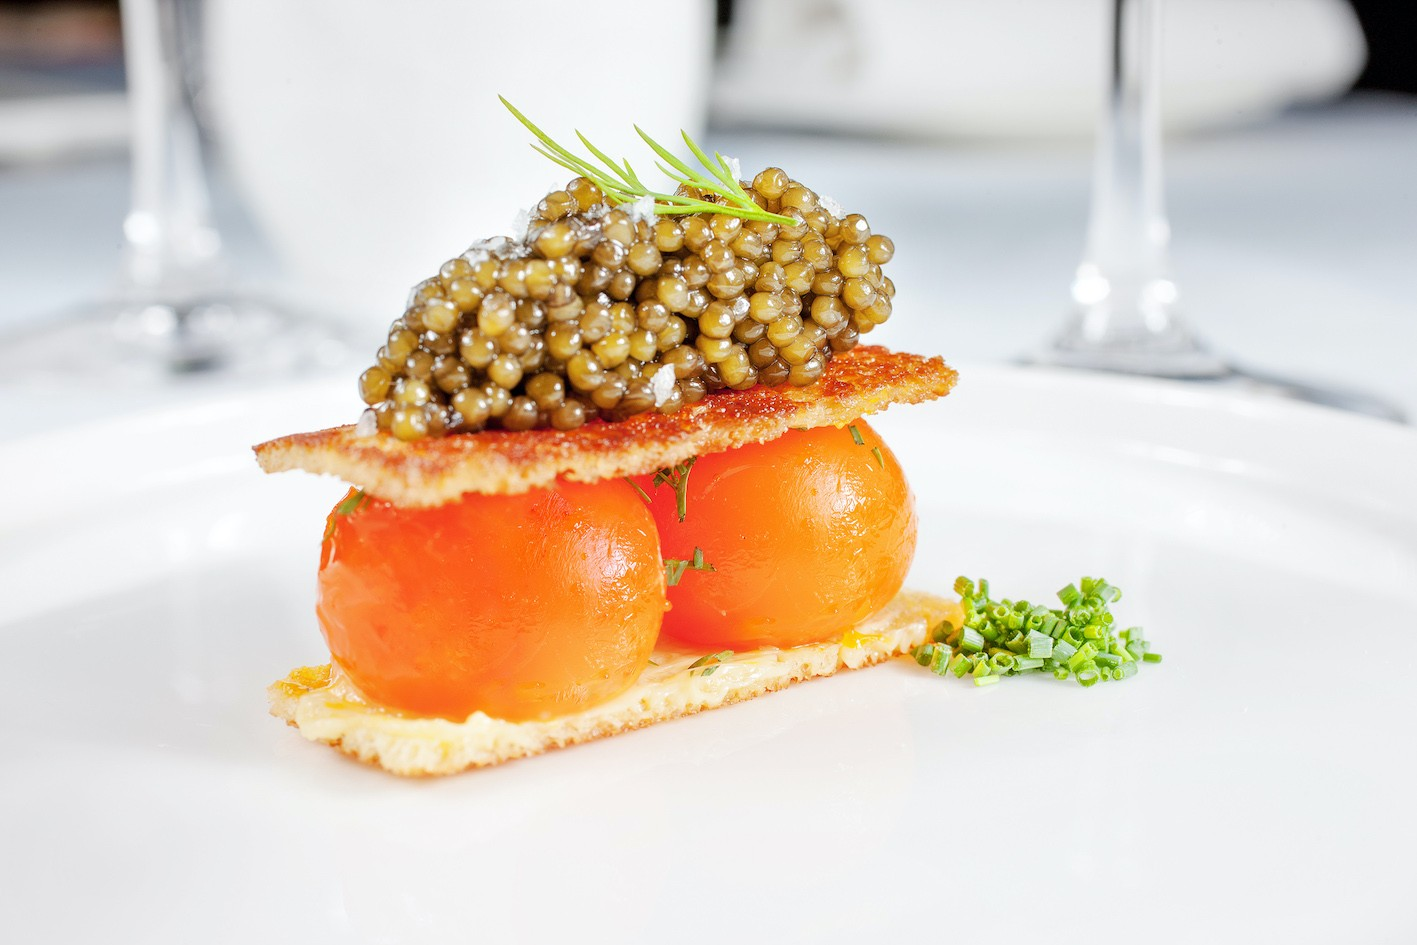 Toasted-Egg-Yolk-Caviar-and-Chives.jpg